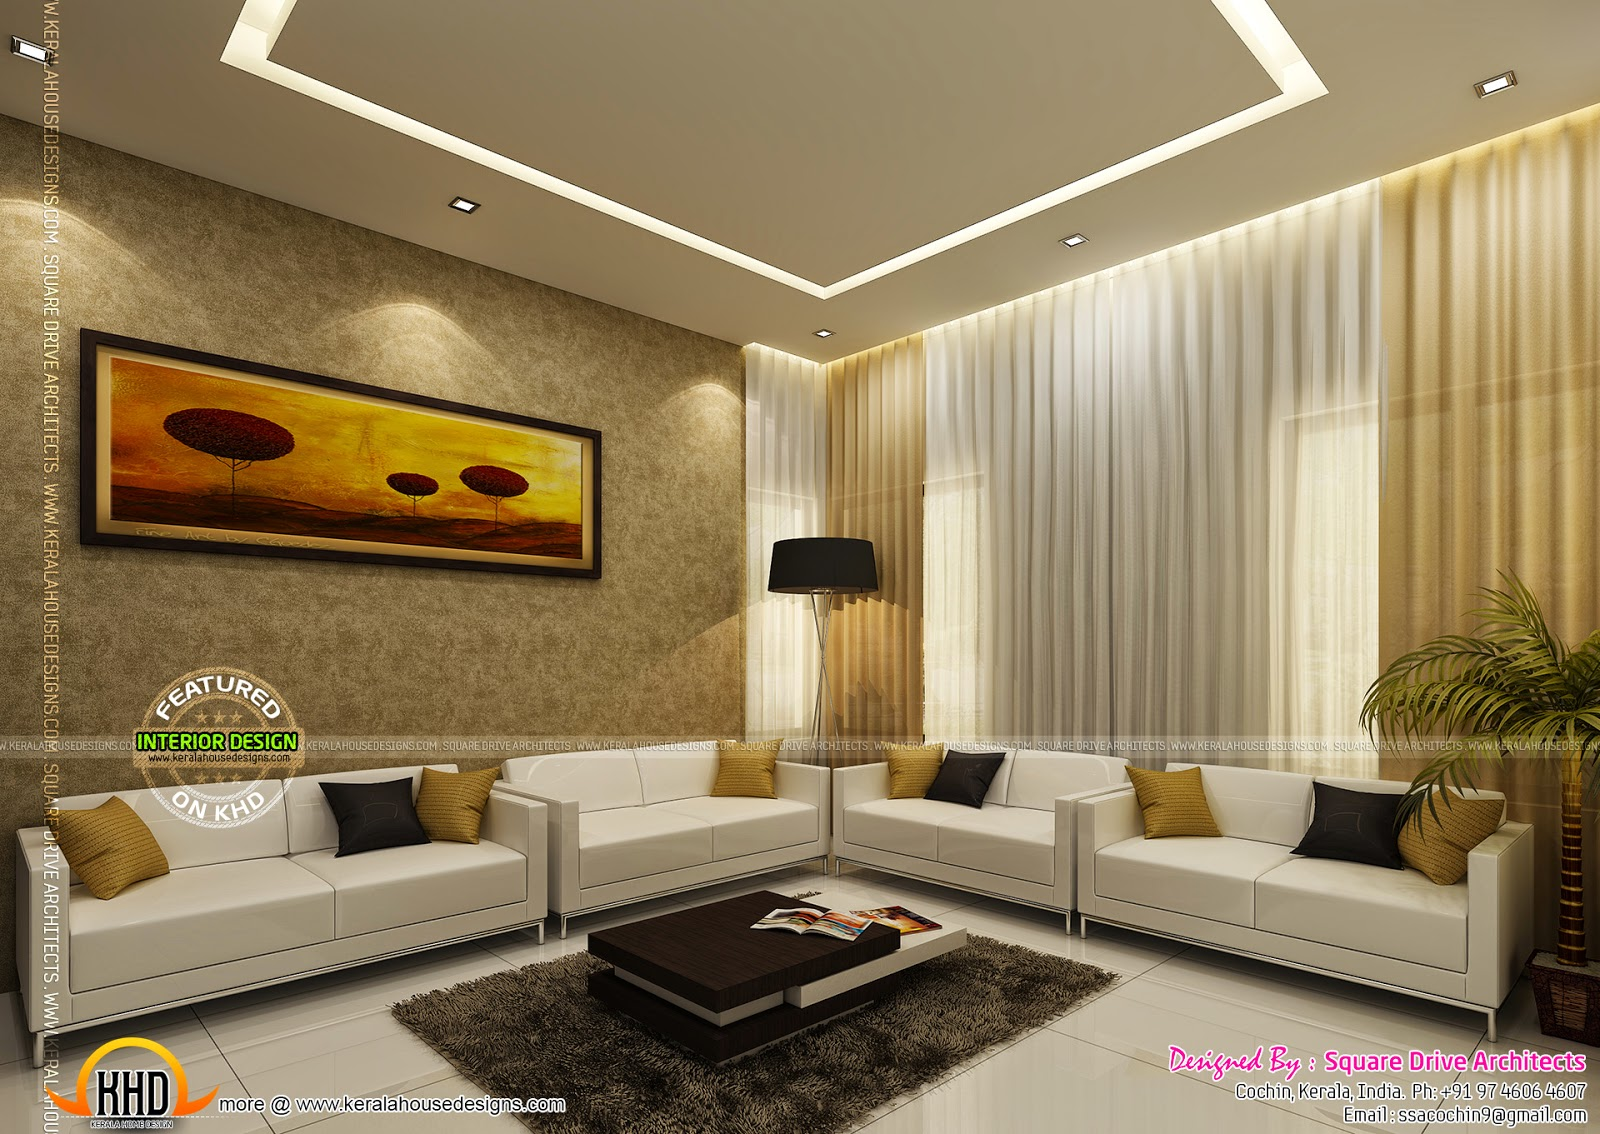 Design House Interiors Home Interiors Designs Kerala Home Design And Floor Plans